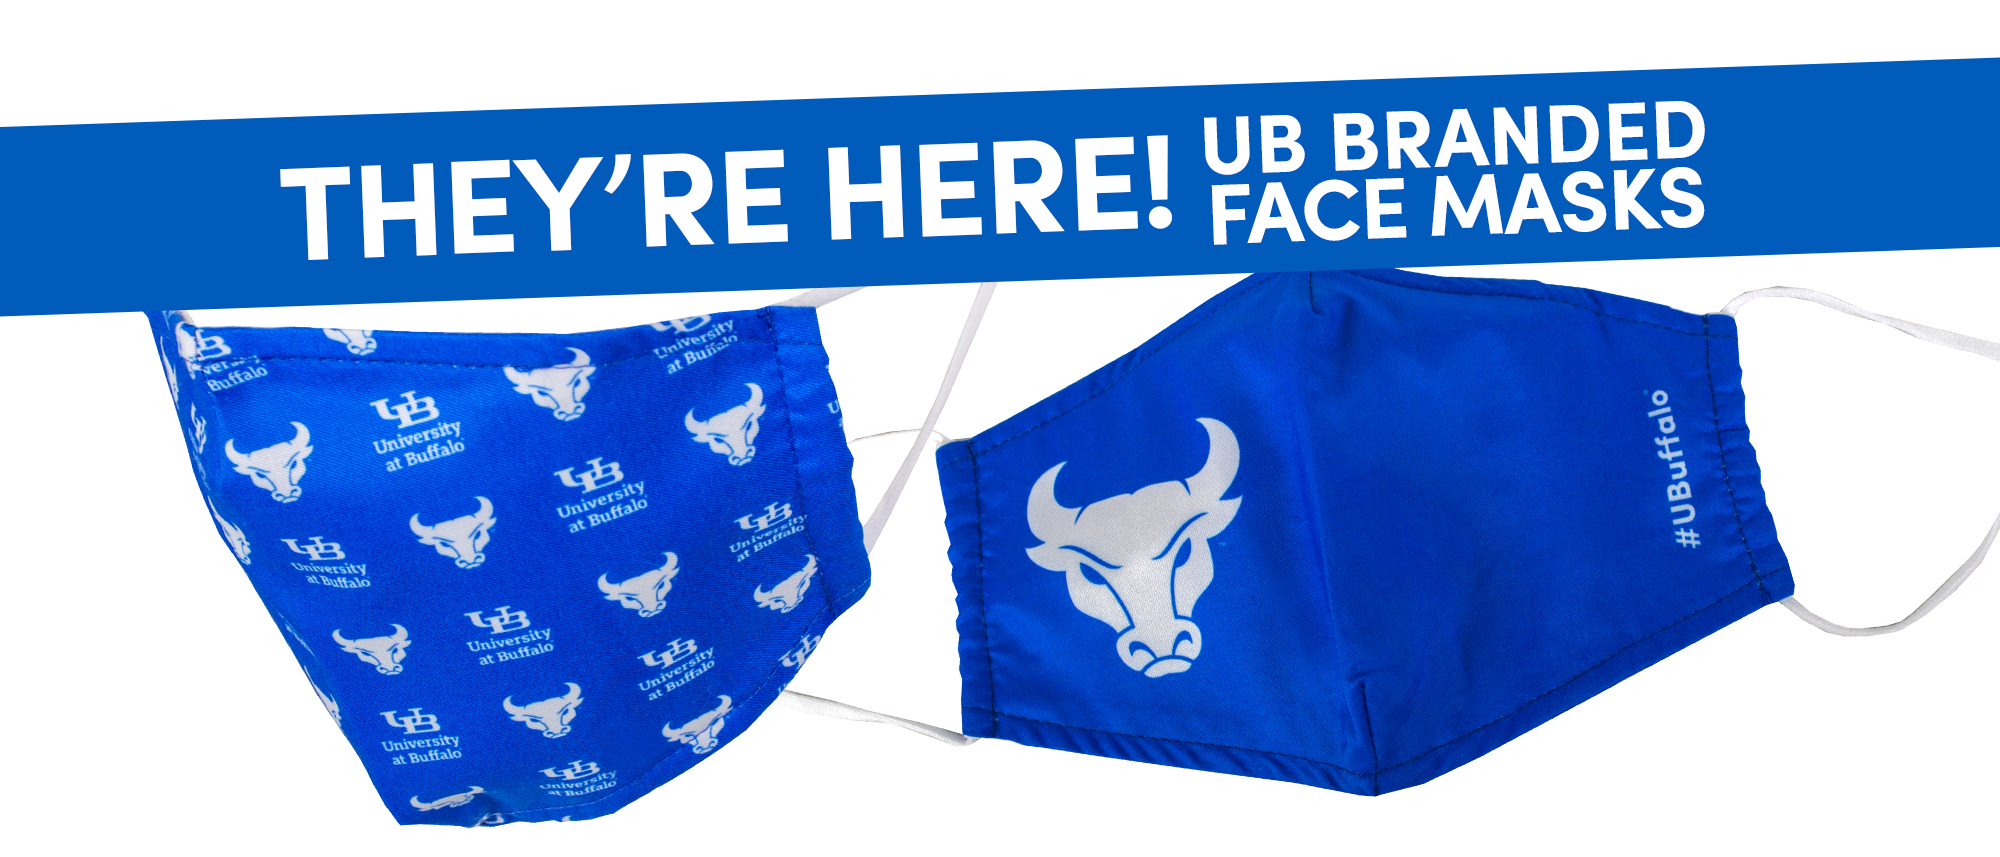 They're Here! UB Branded Face Masks